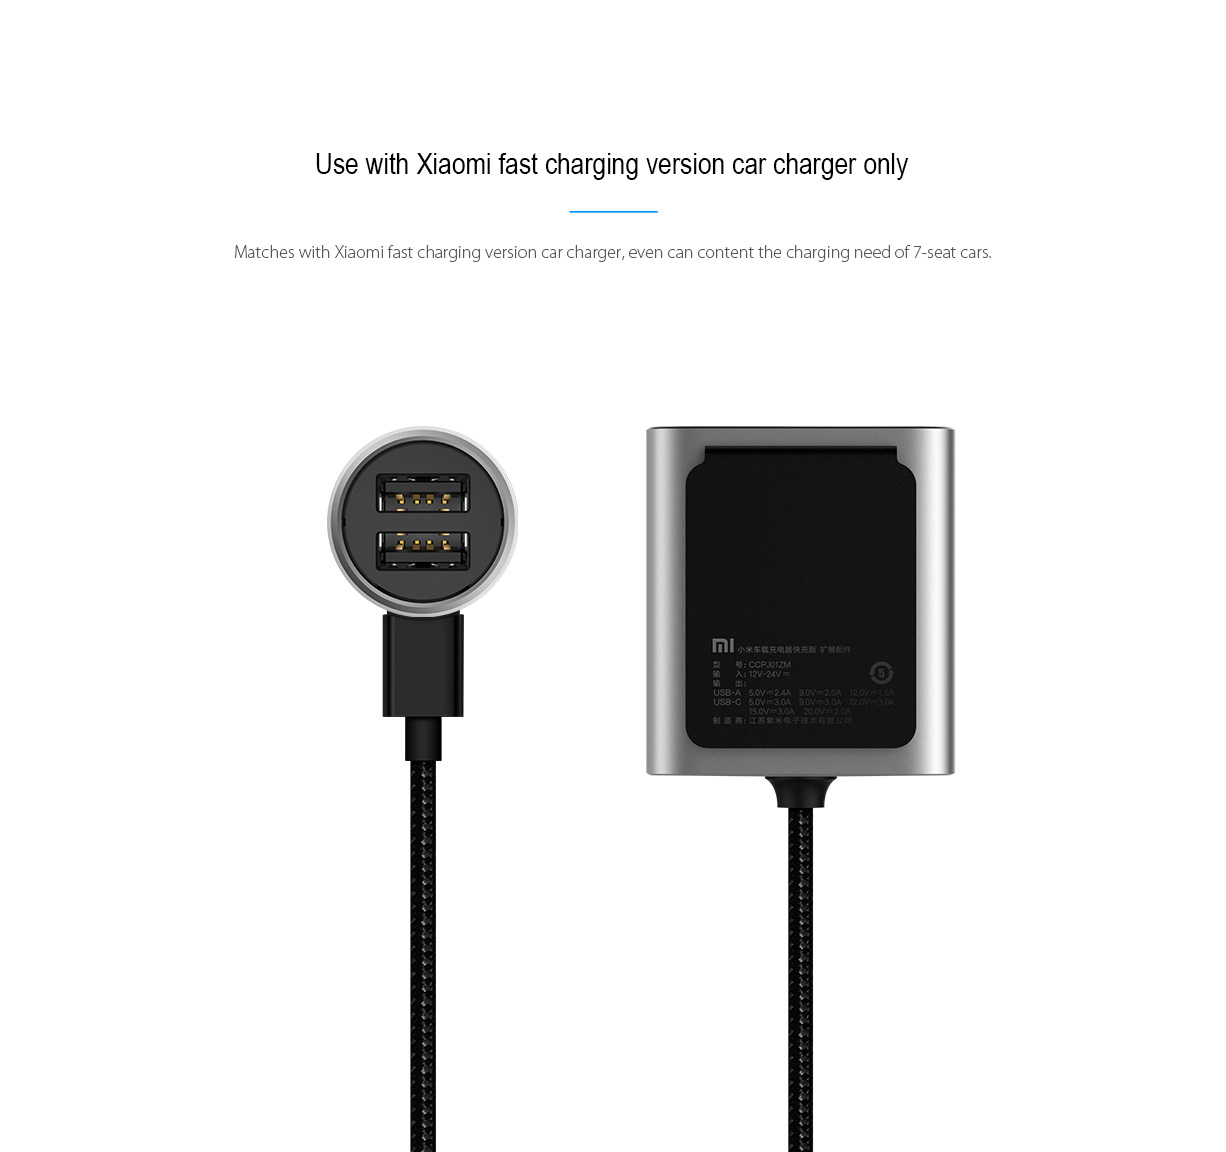 Original xiaomi fast charging version usb car charger expansion accessory